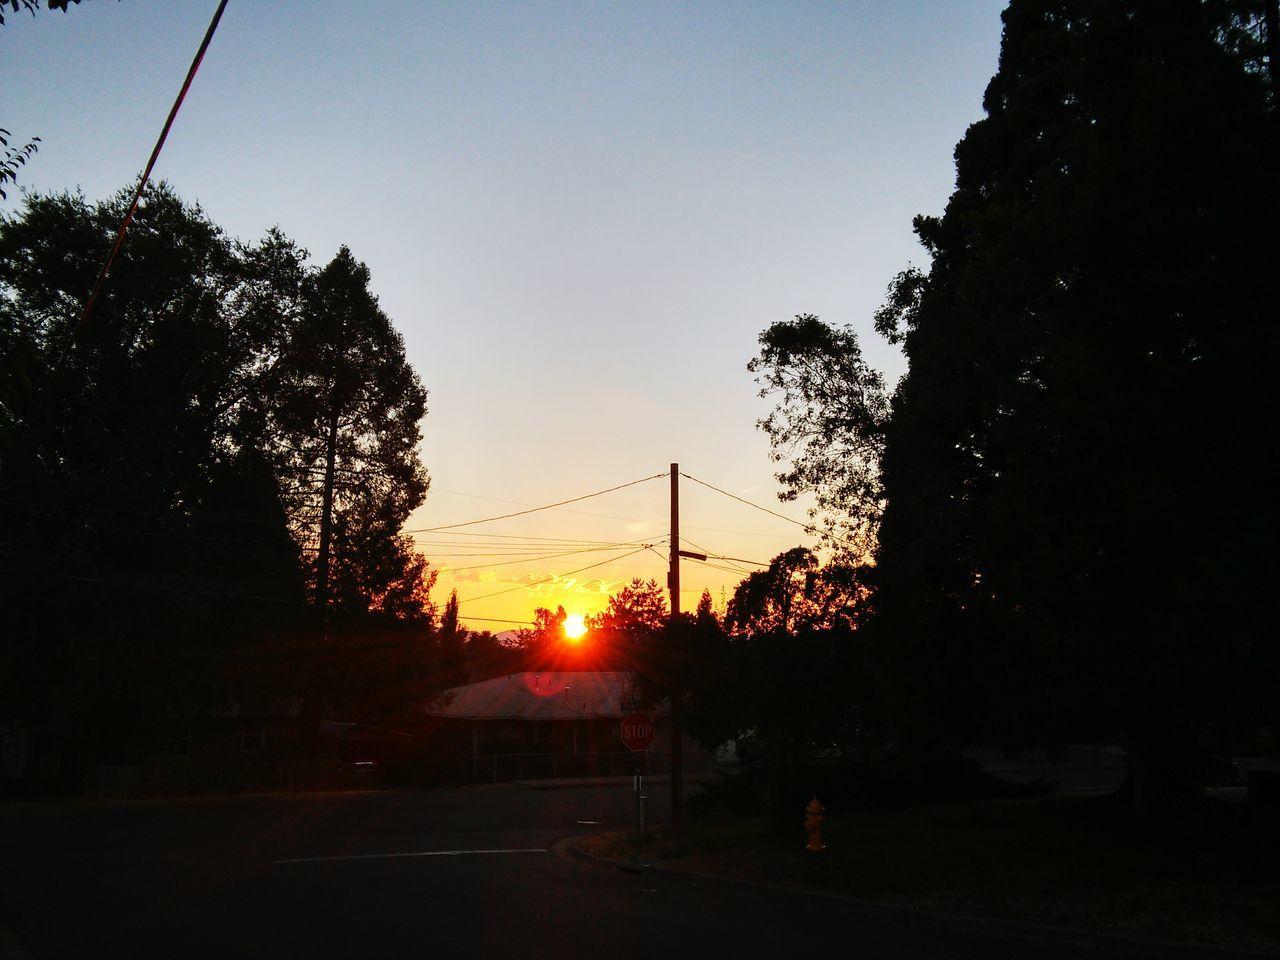 sunset, tree, silhouette, sun, sky, cable, no people, sunlight, nature, outdoors, growth, beauty in nature, electricity pylon, telephone line, day